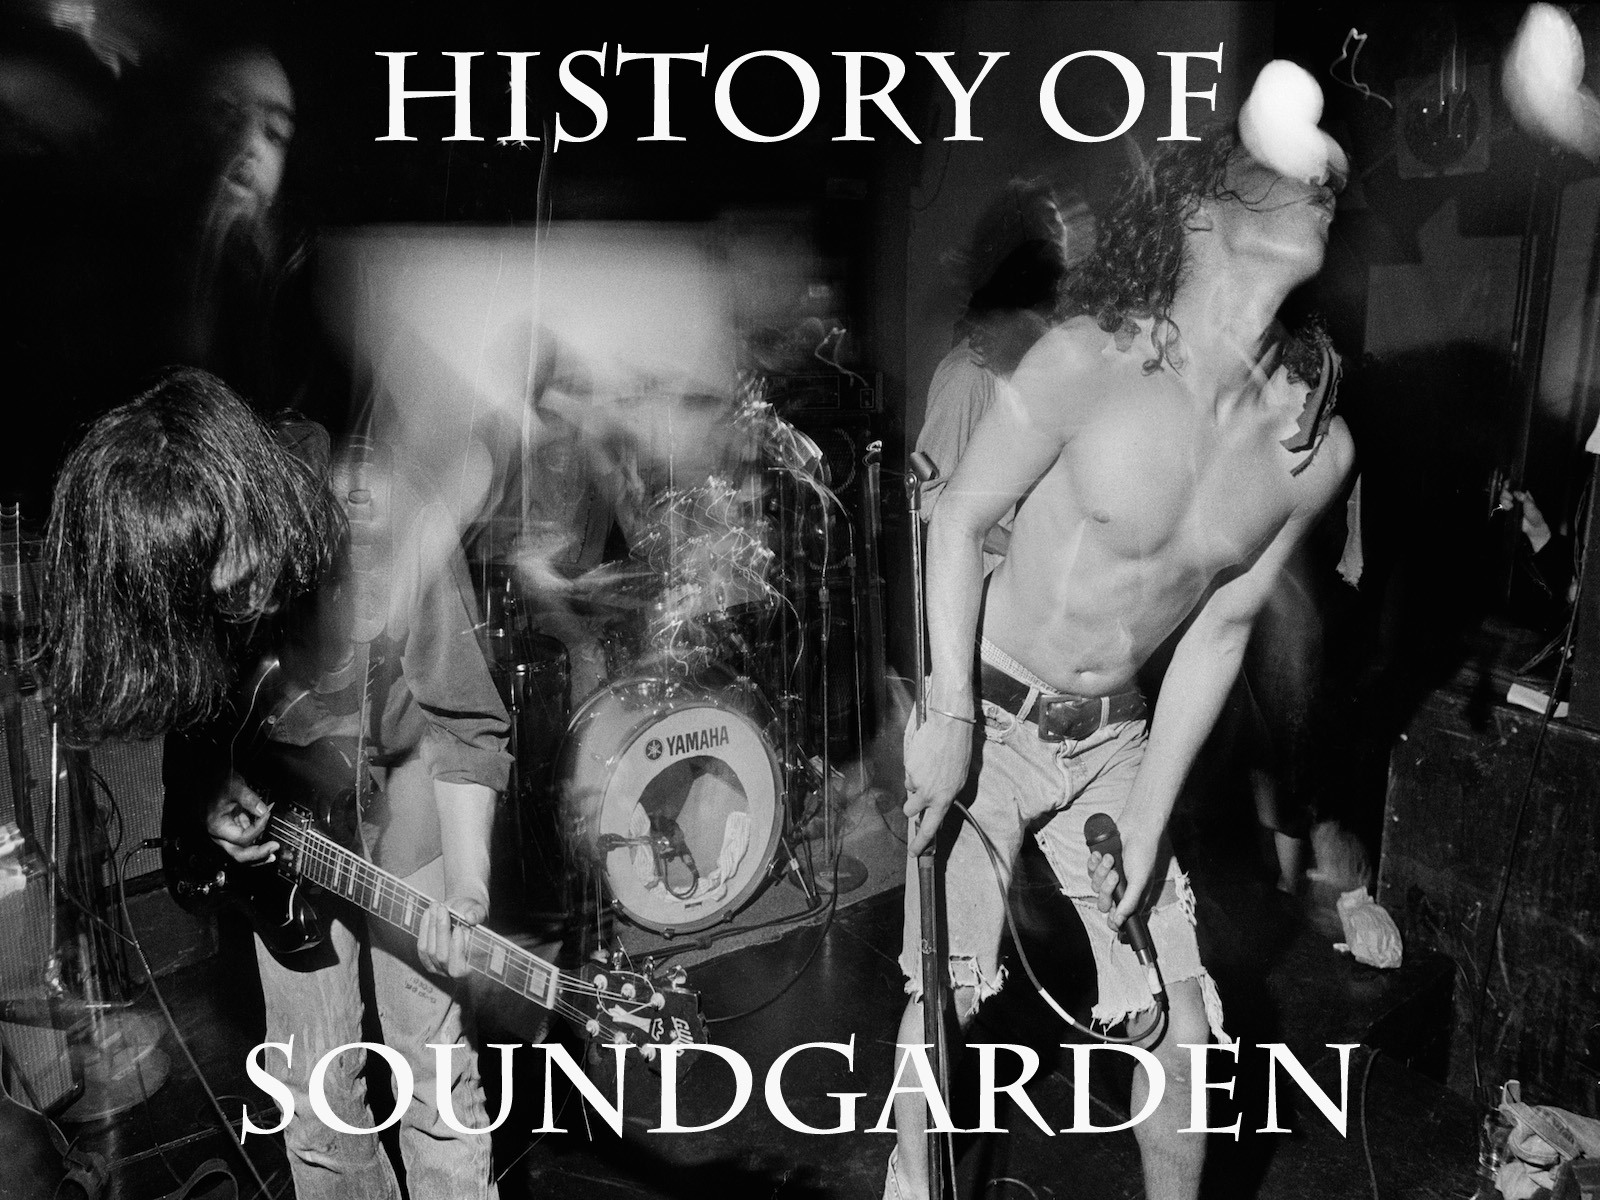 HISTORY OF SOUNDGARDEN